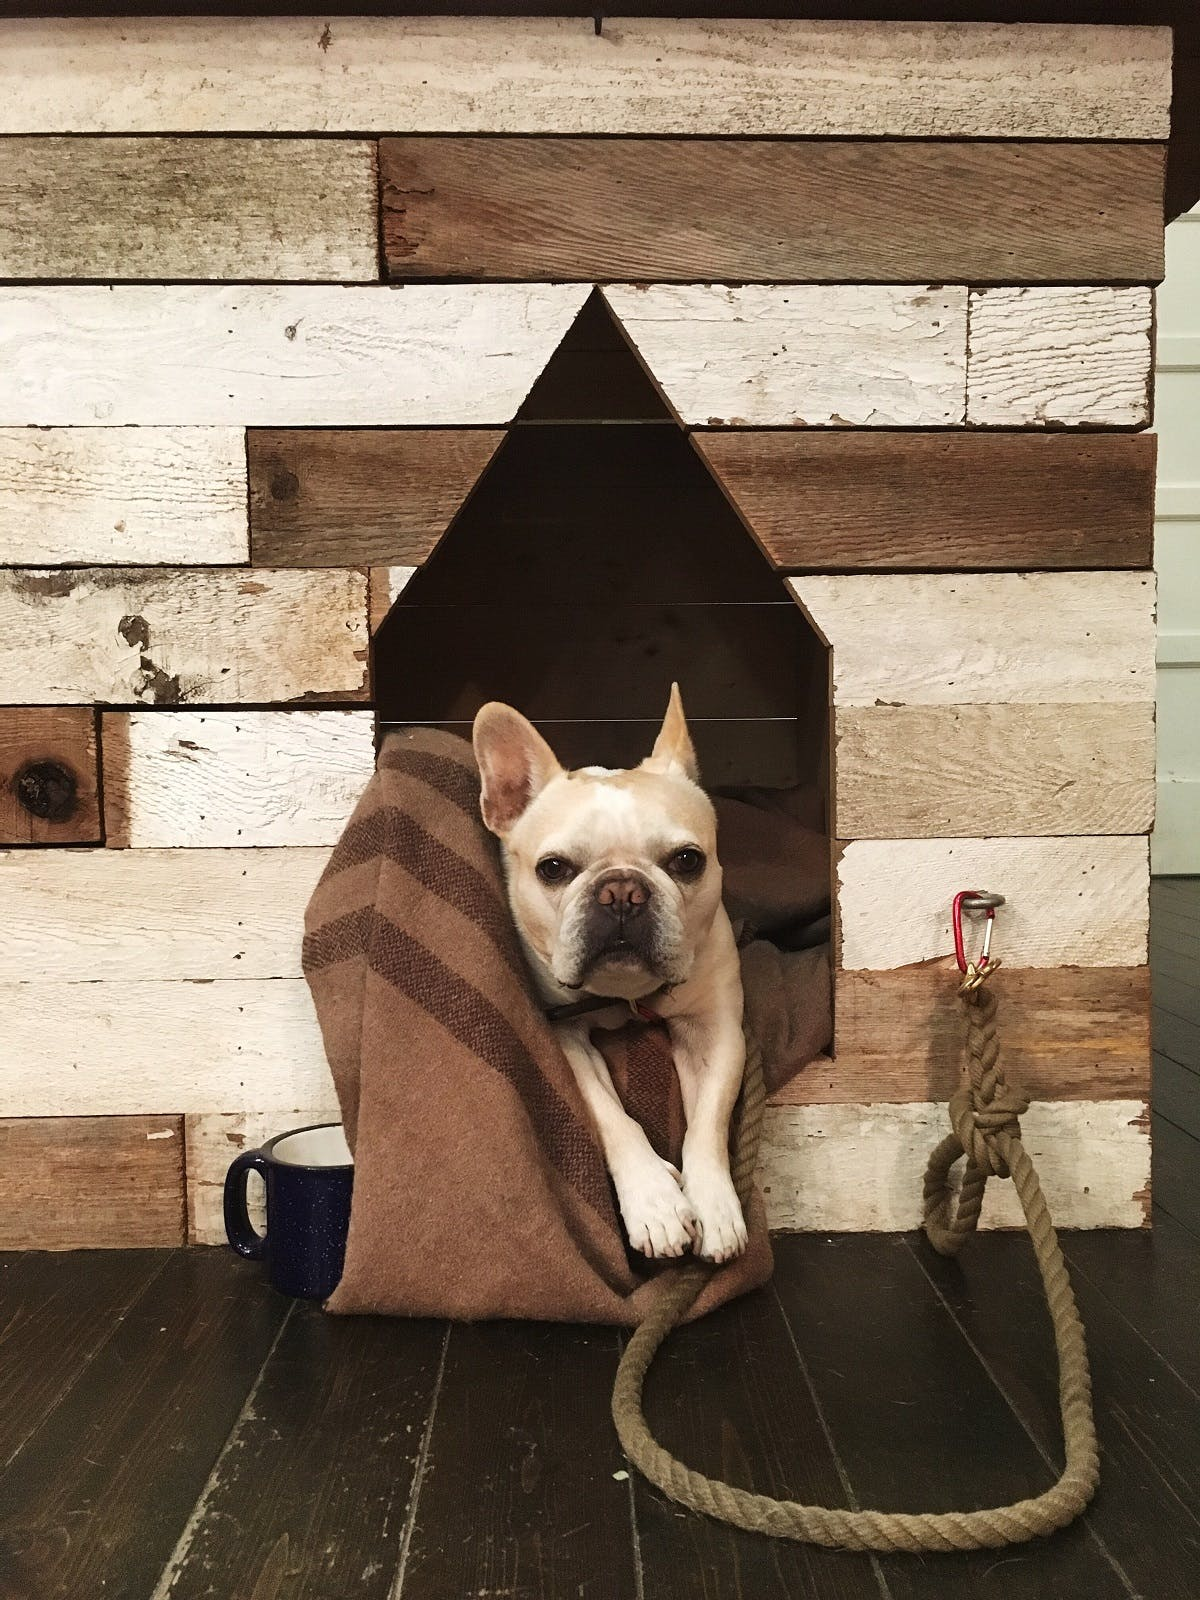 A French Bulldog sits on a blanket inside a doghouse